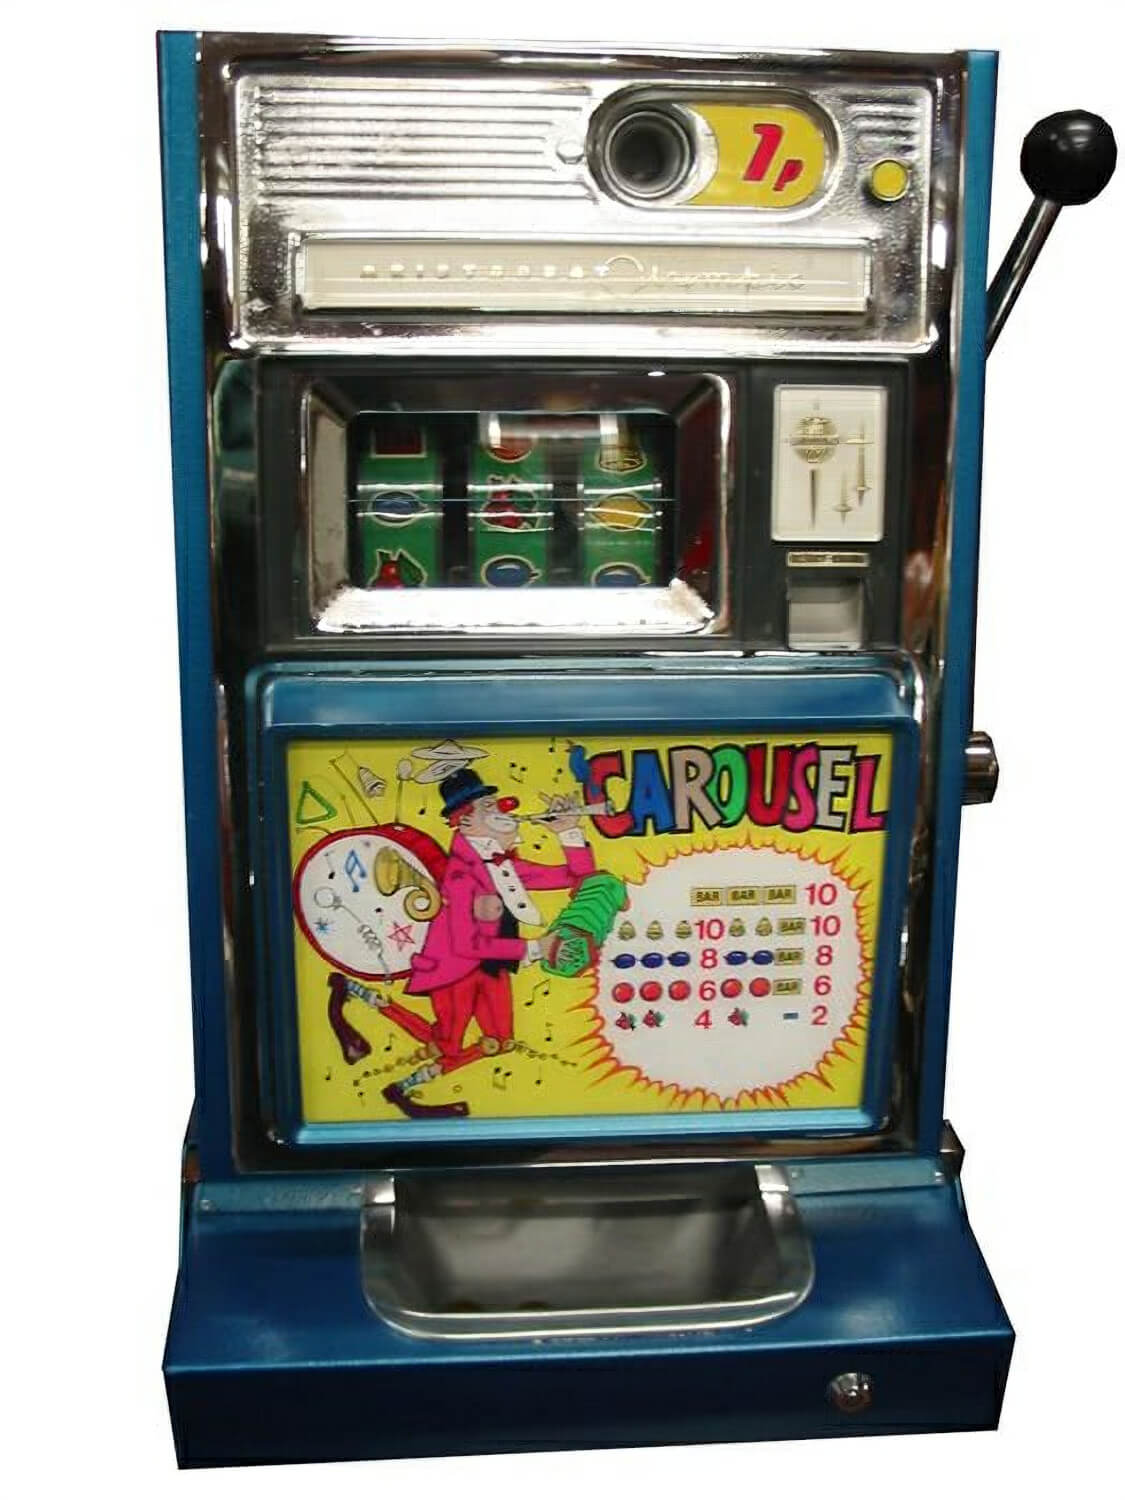 Aristocrat Carousel One Arm Bandit Liberty Games